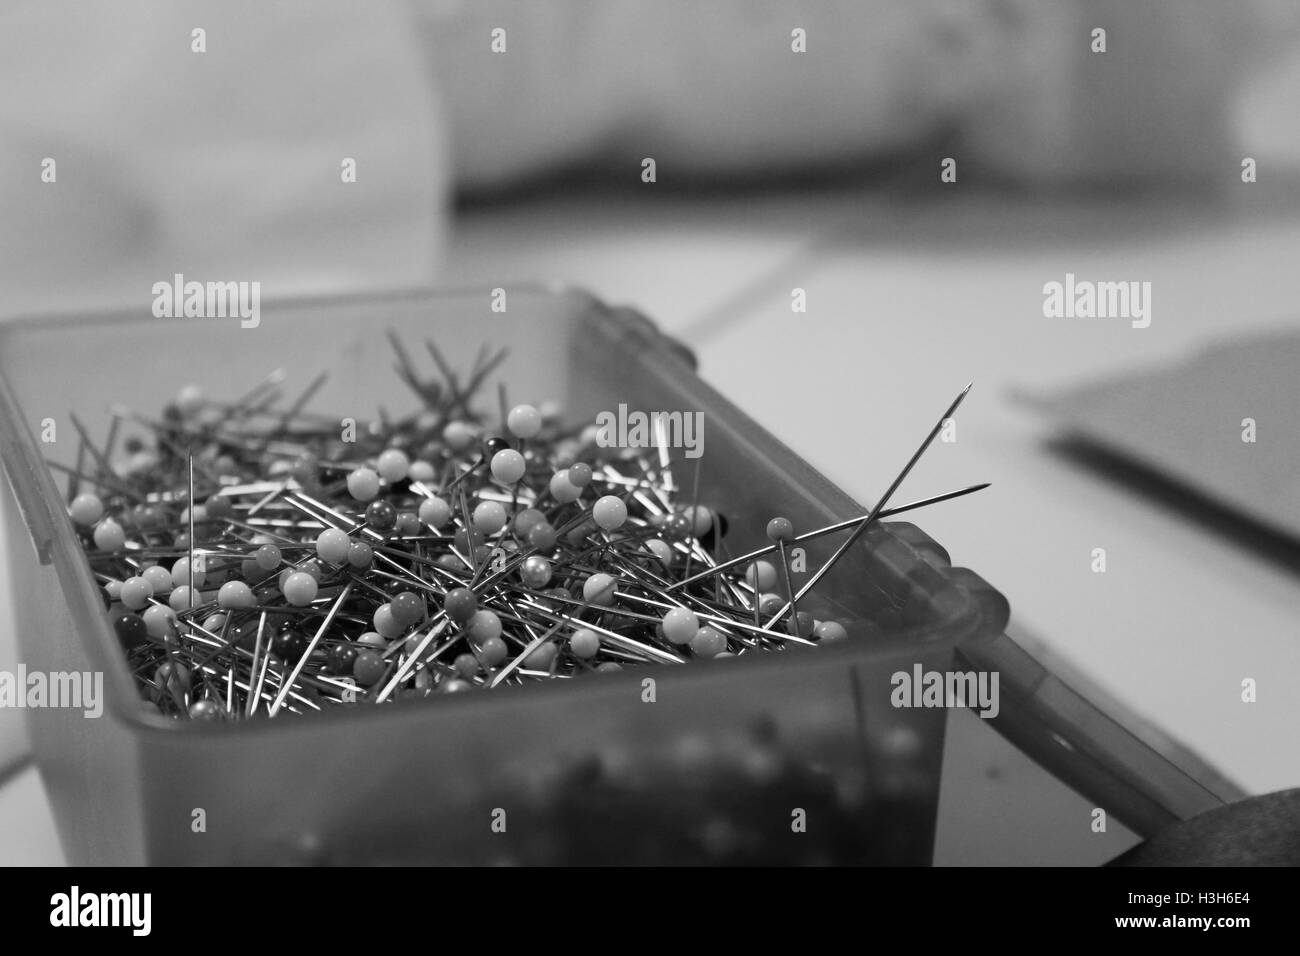 A box of sewing pins sits open on a table. - Stock Image